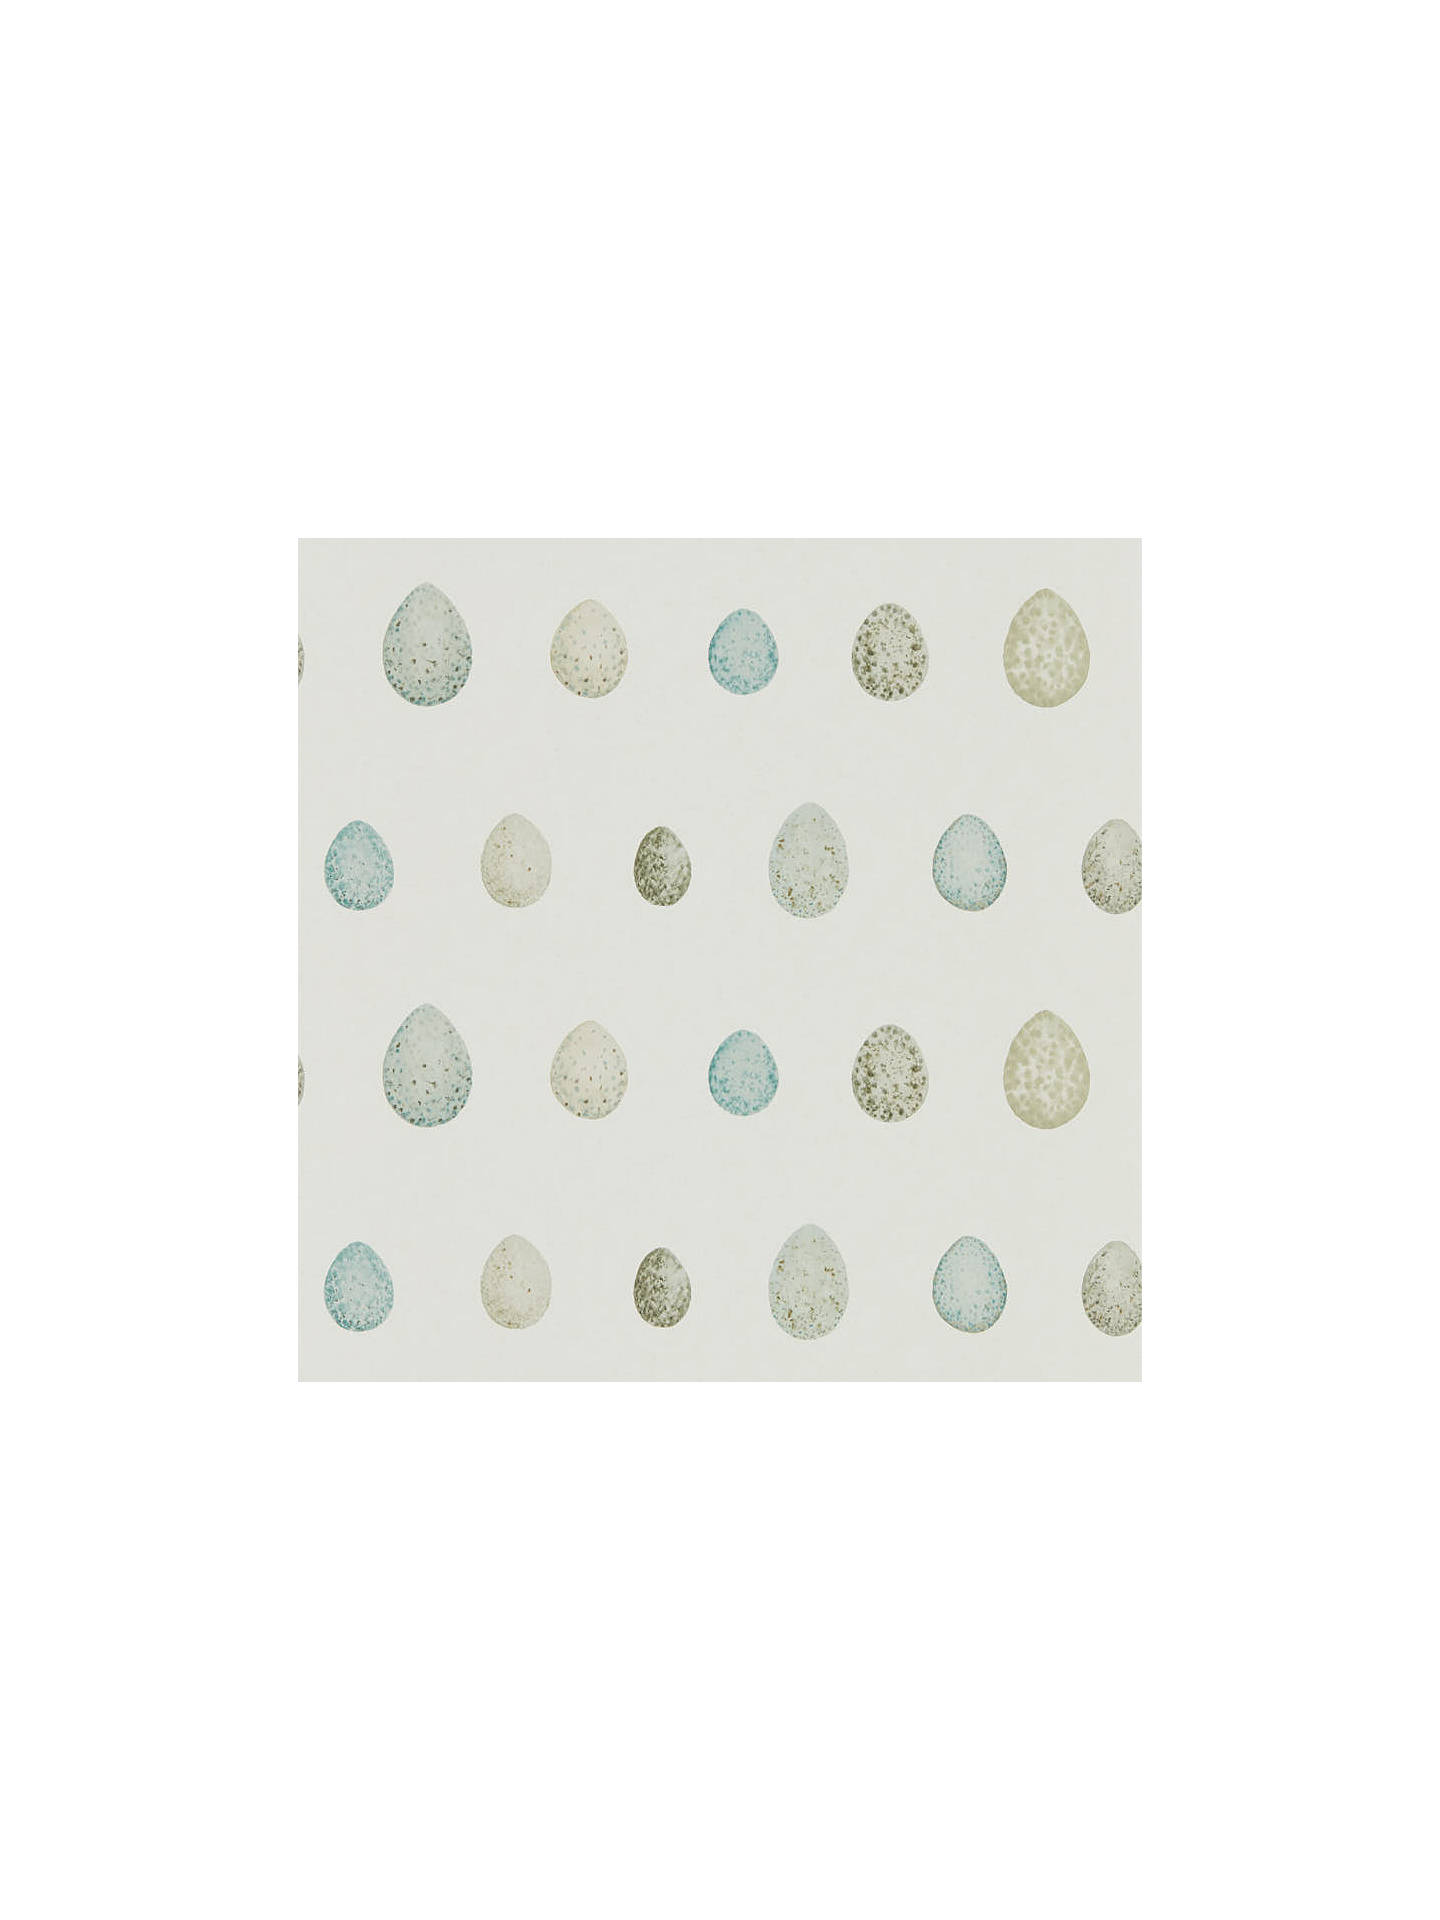 BuySanderson Nest Egg Wallpaper, DEBB216502 Online at johnlewis.com